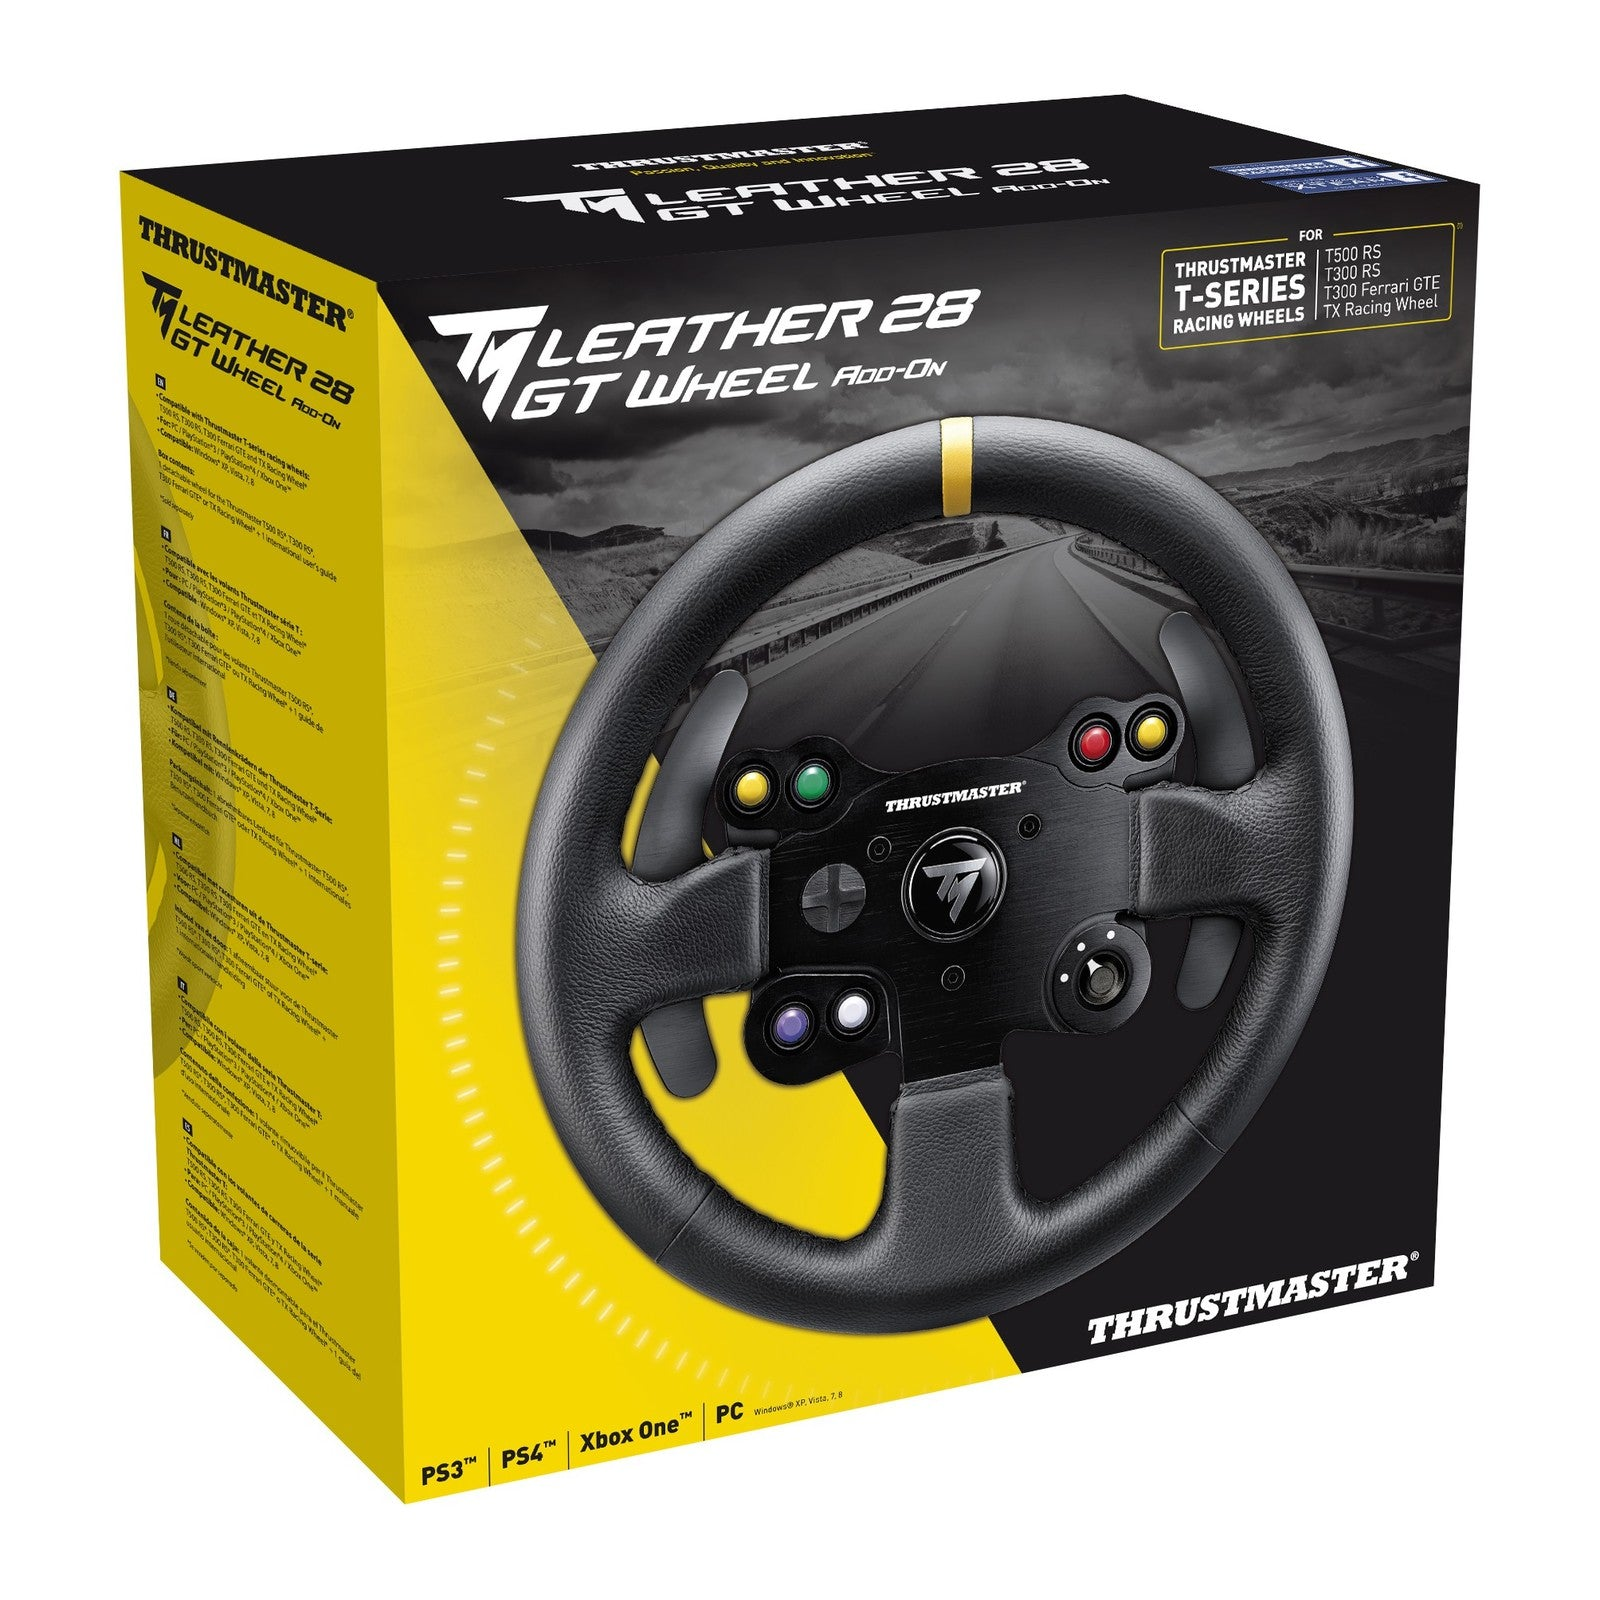 Thrustmaster TM Leather 28 GT Wheel Add-On (PS4, PS3, Xbox One & PC) - PS4